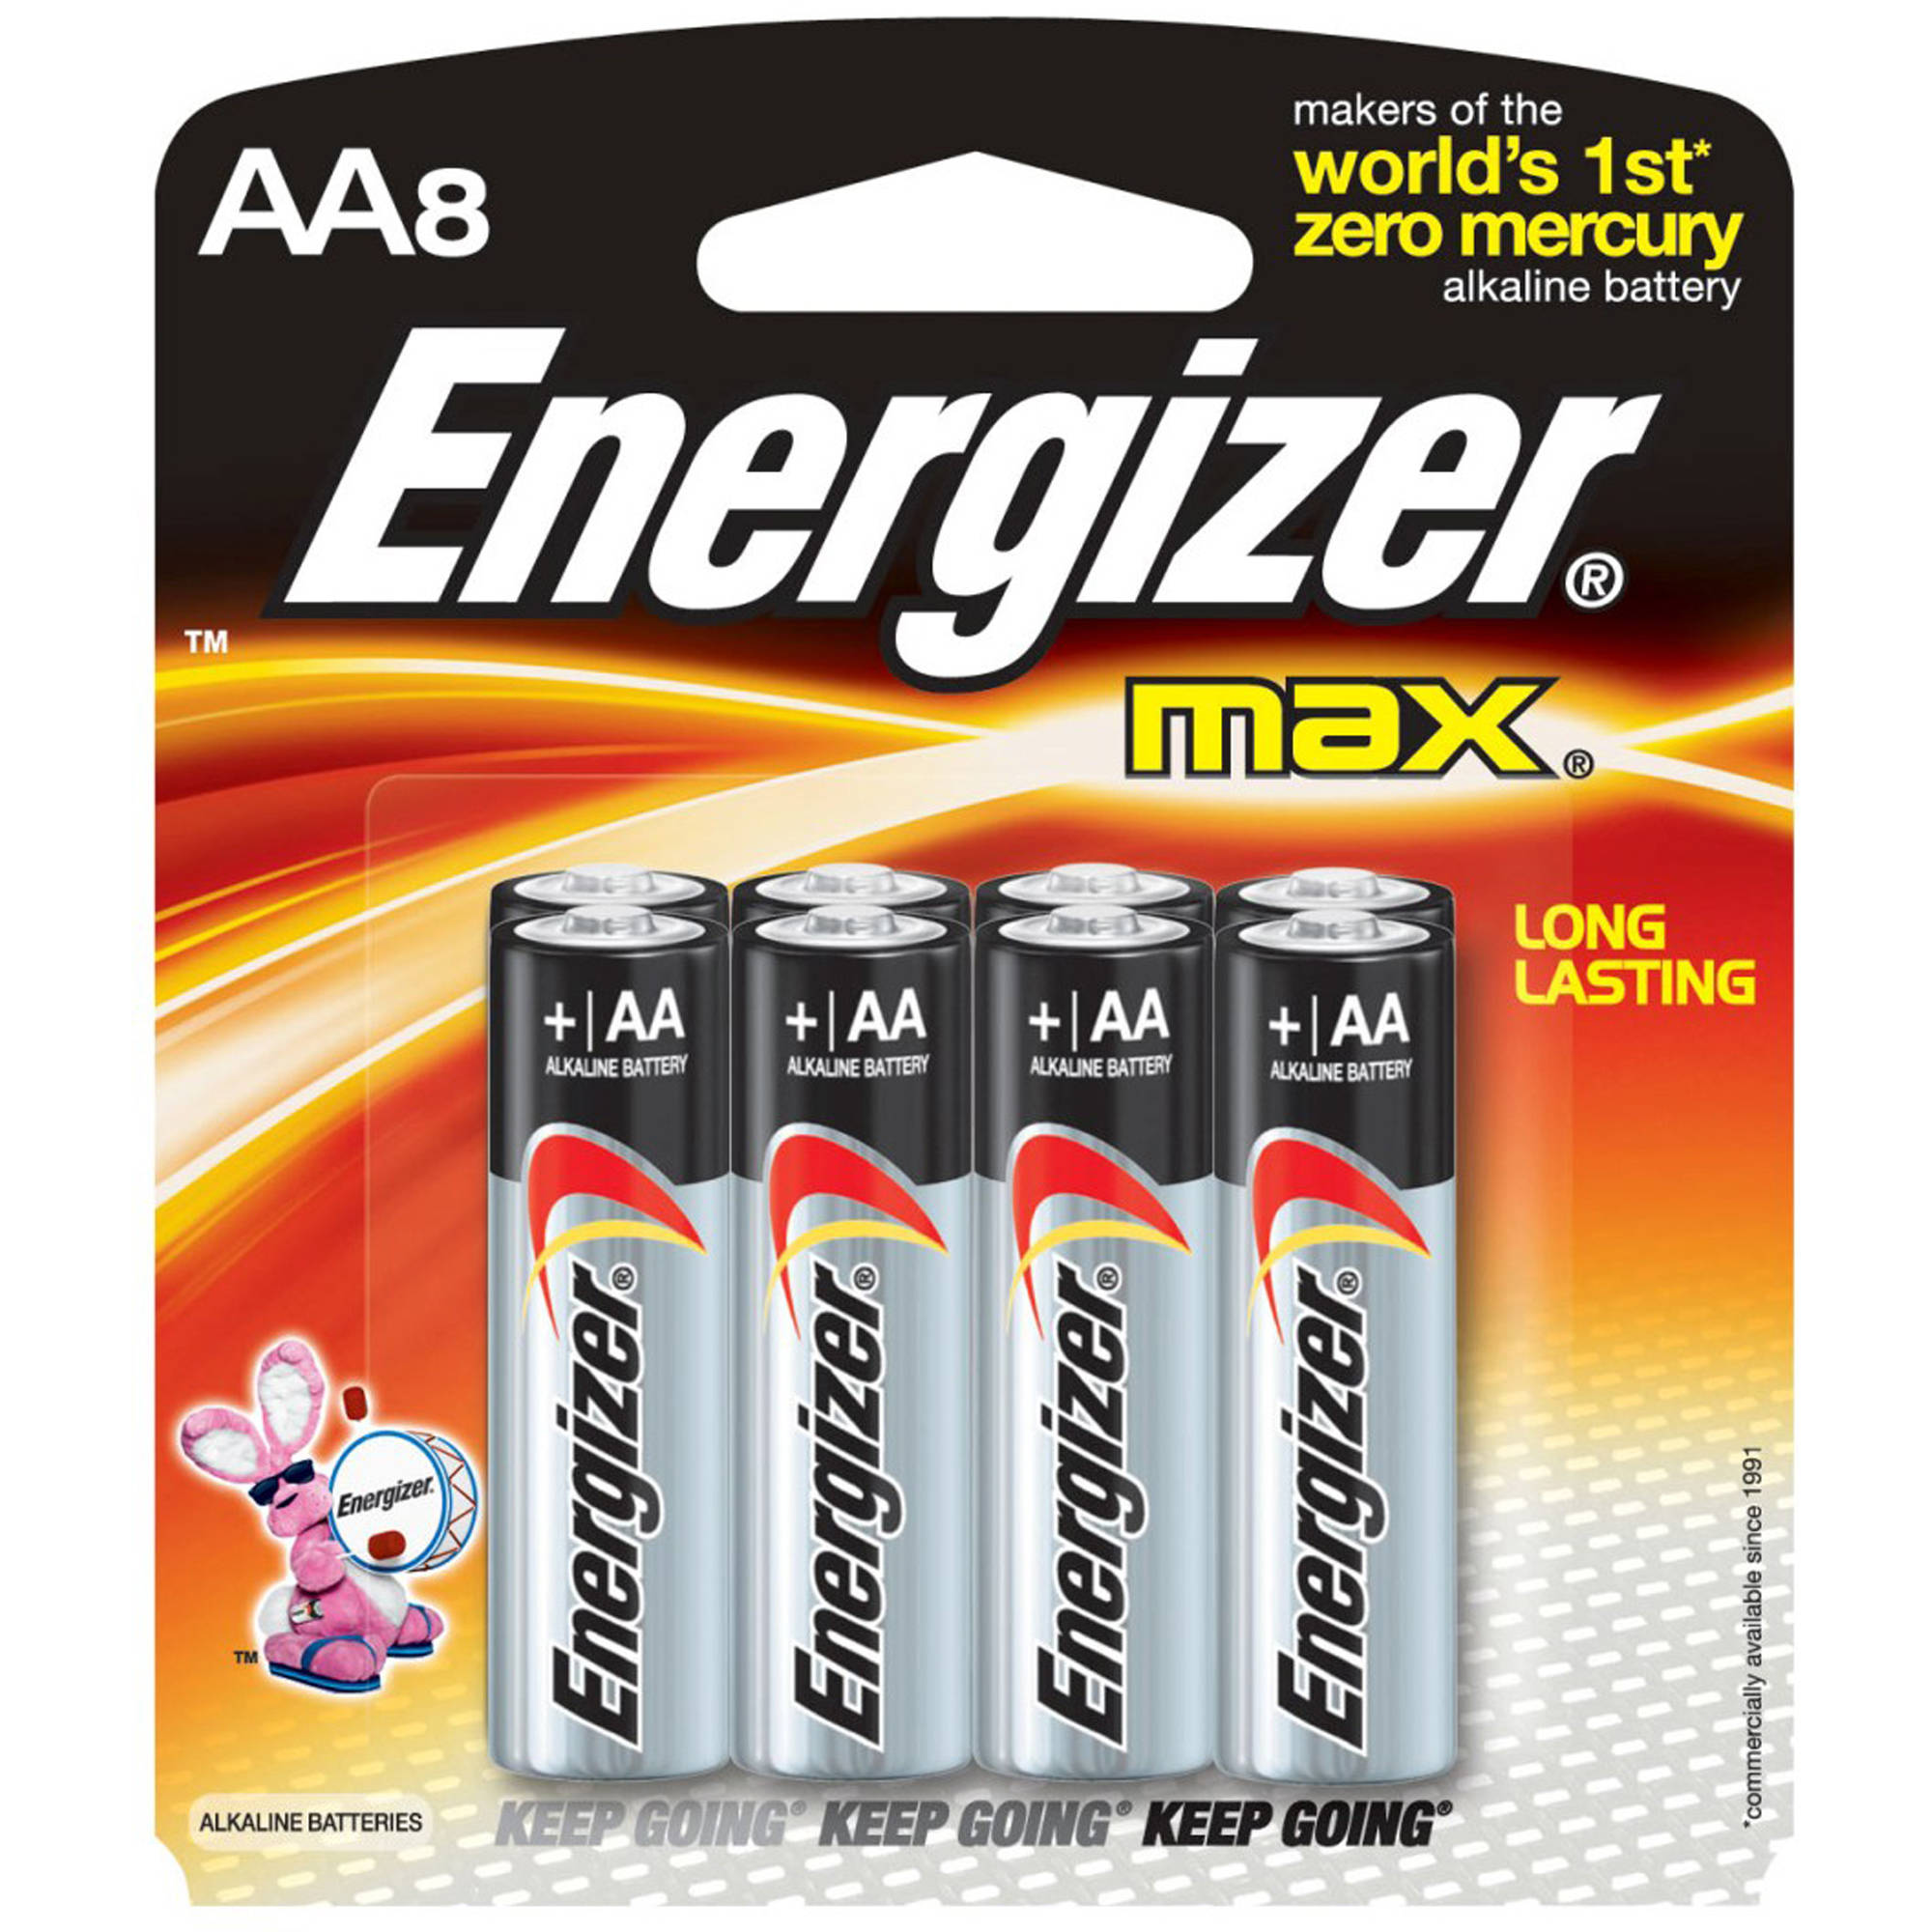 Energizer Max AA, 8 Pack Household Batteries